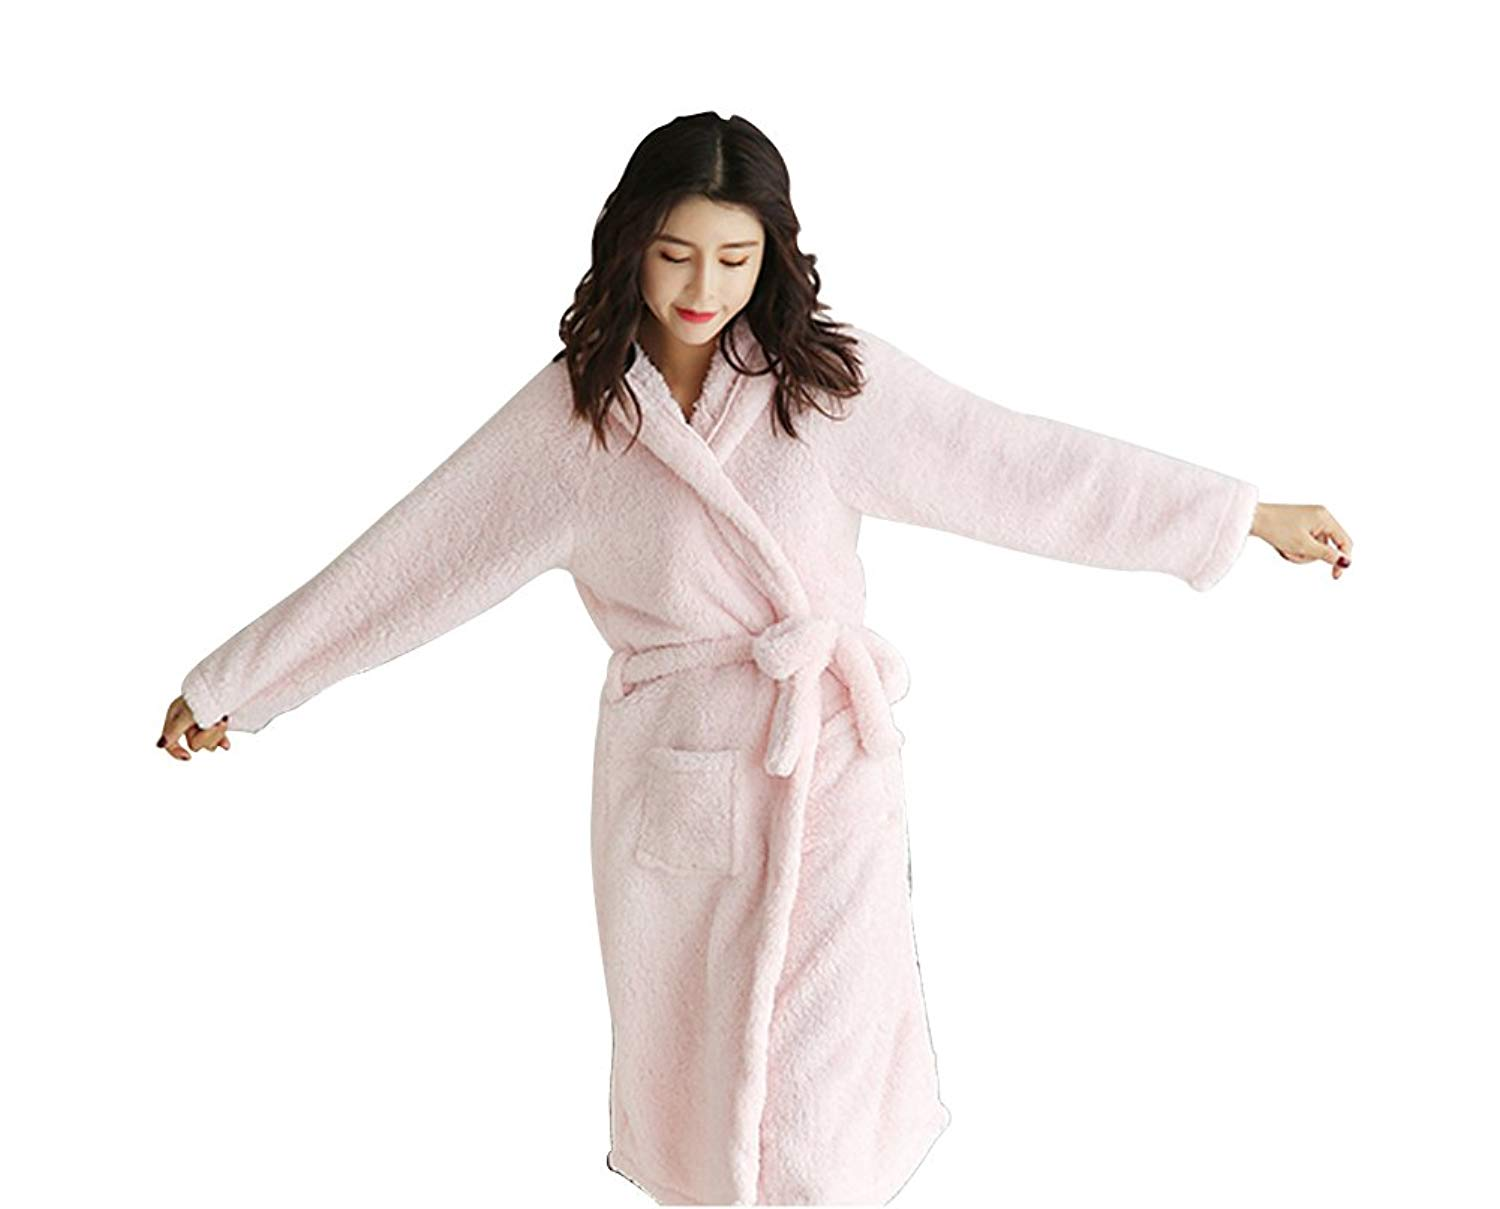 1fd1d5e18068b Get Quotations · FloYoung Cartoon Rabbit Ear Bathrobe Nightgown Pyjamas  Hotel Spa Dress Sleepwear